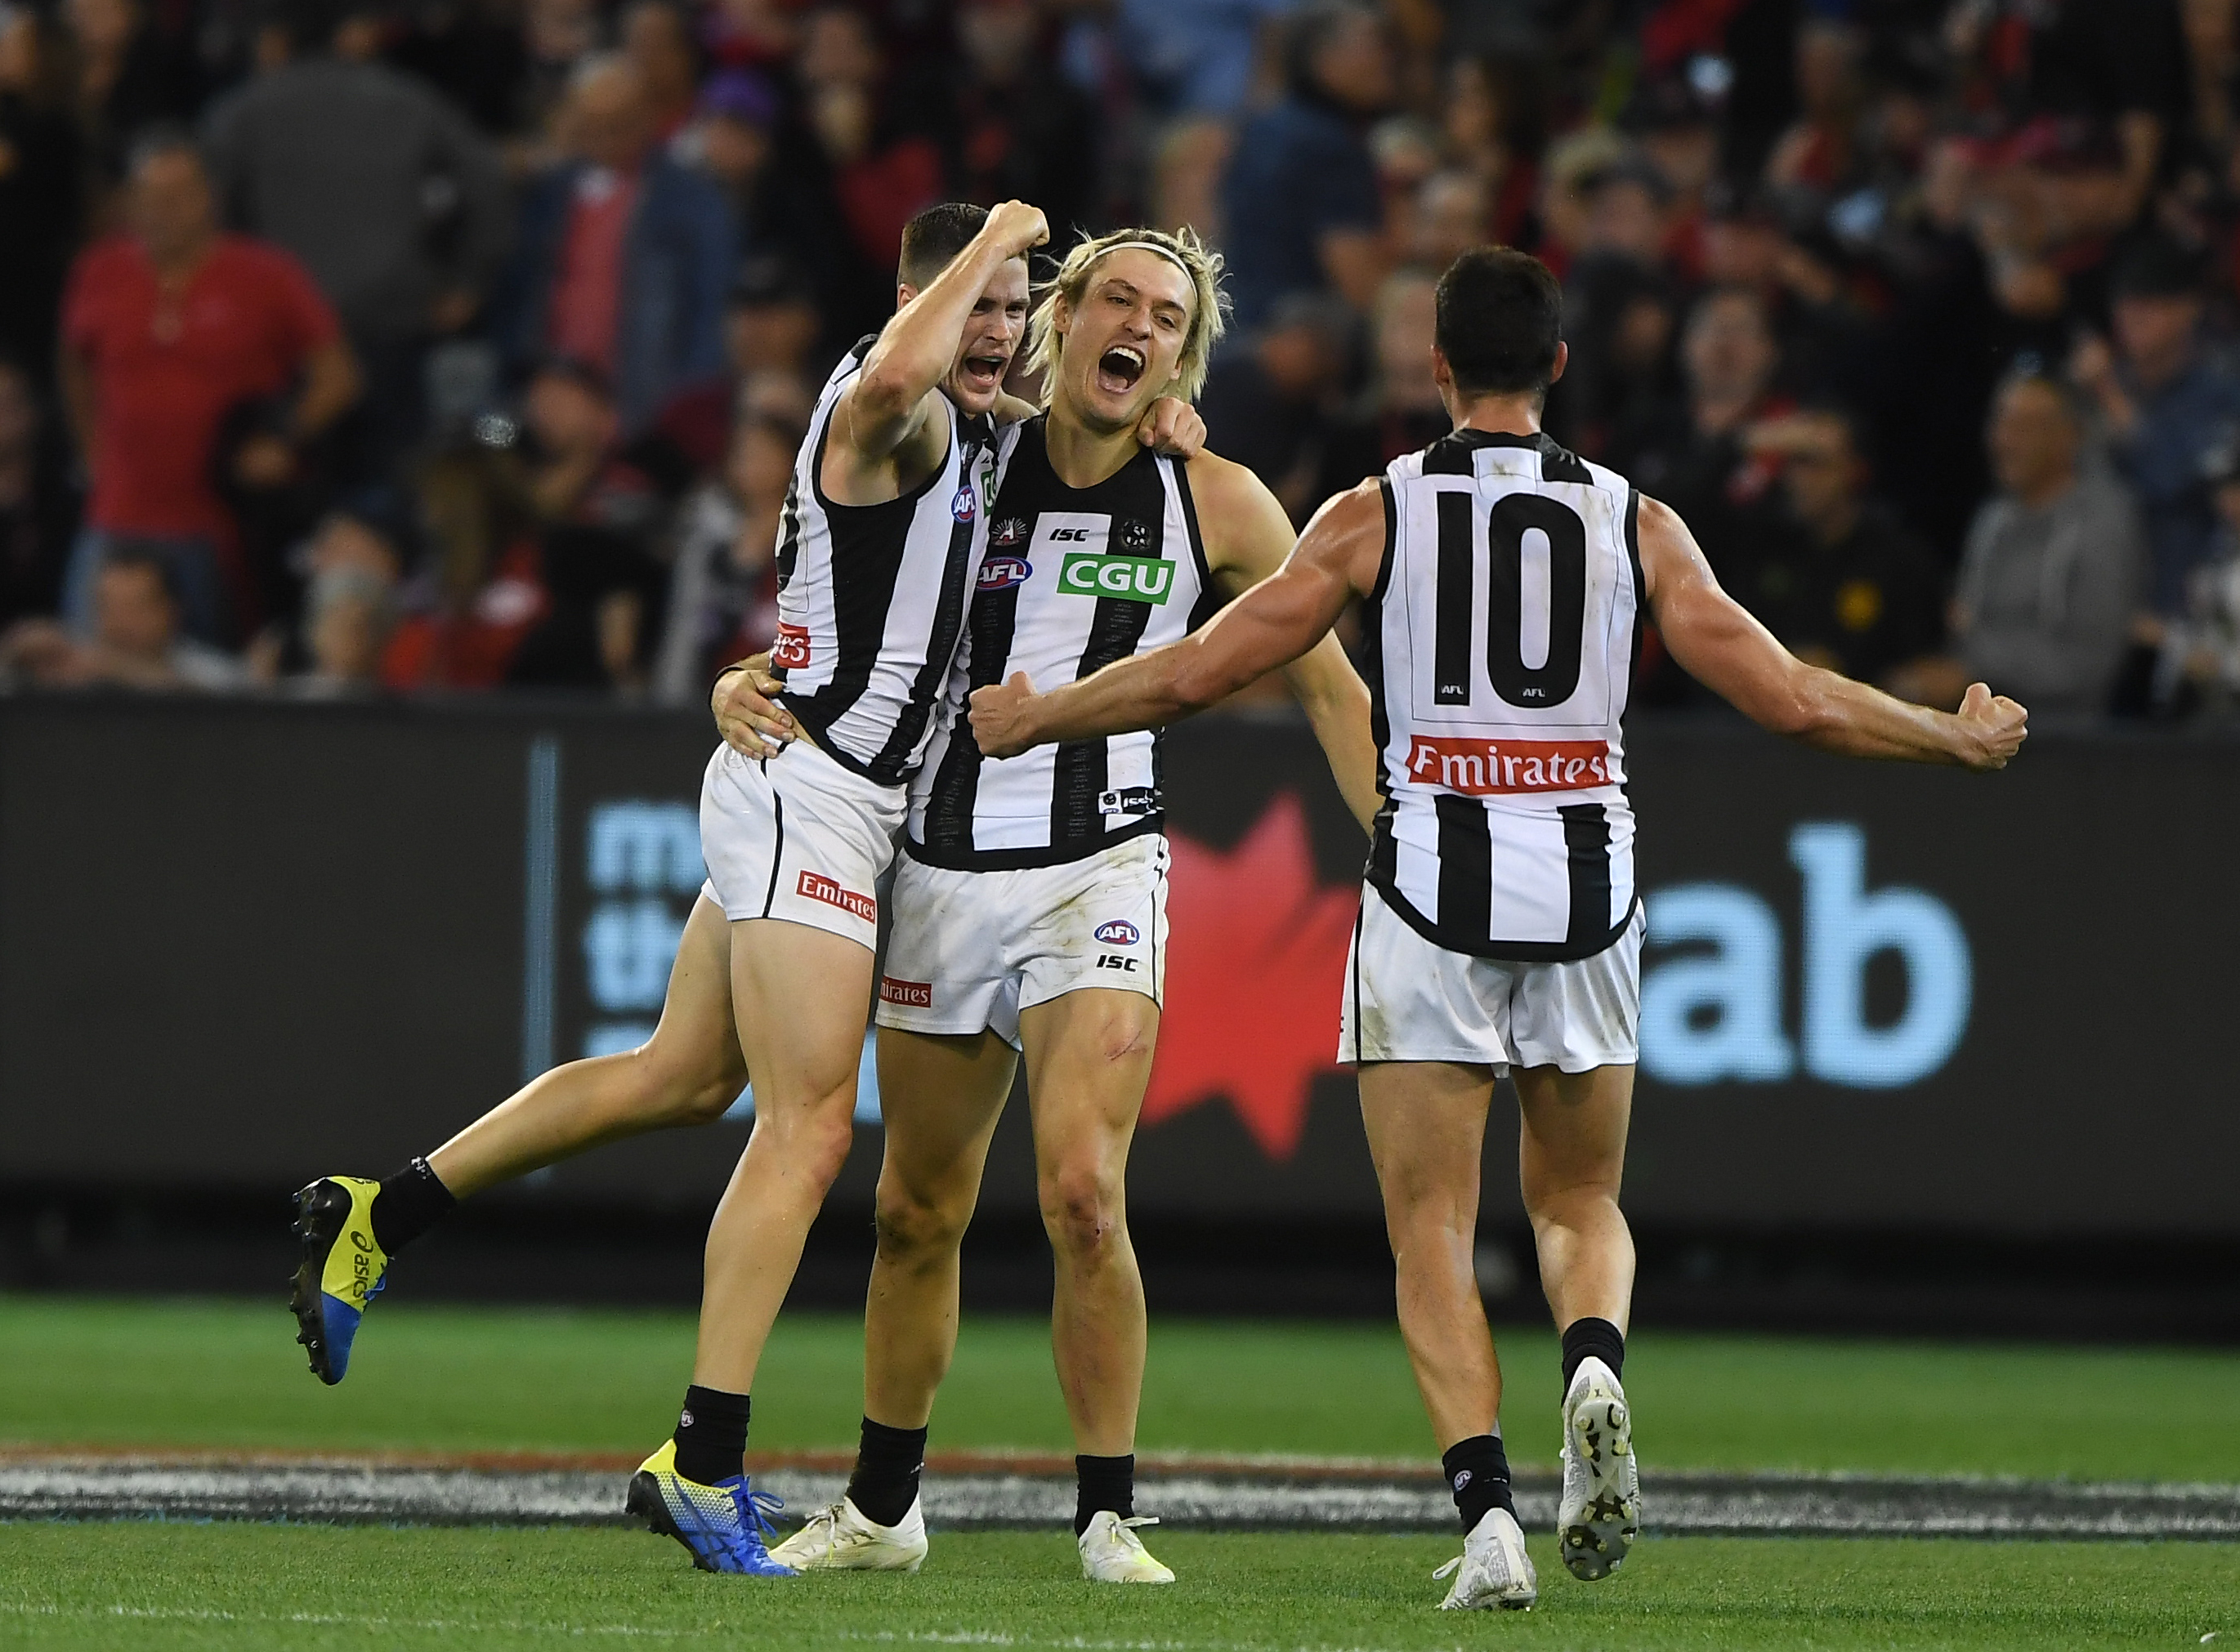 Buckley's high praise for 'grounded' Darcy Moore